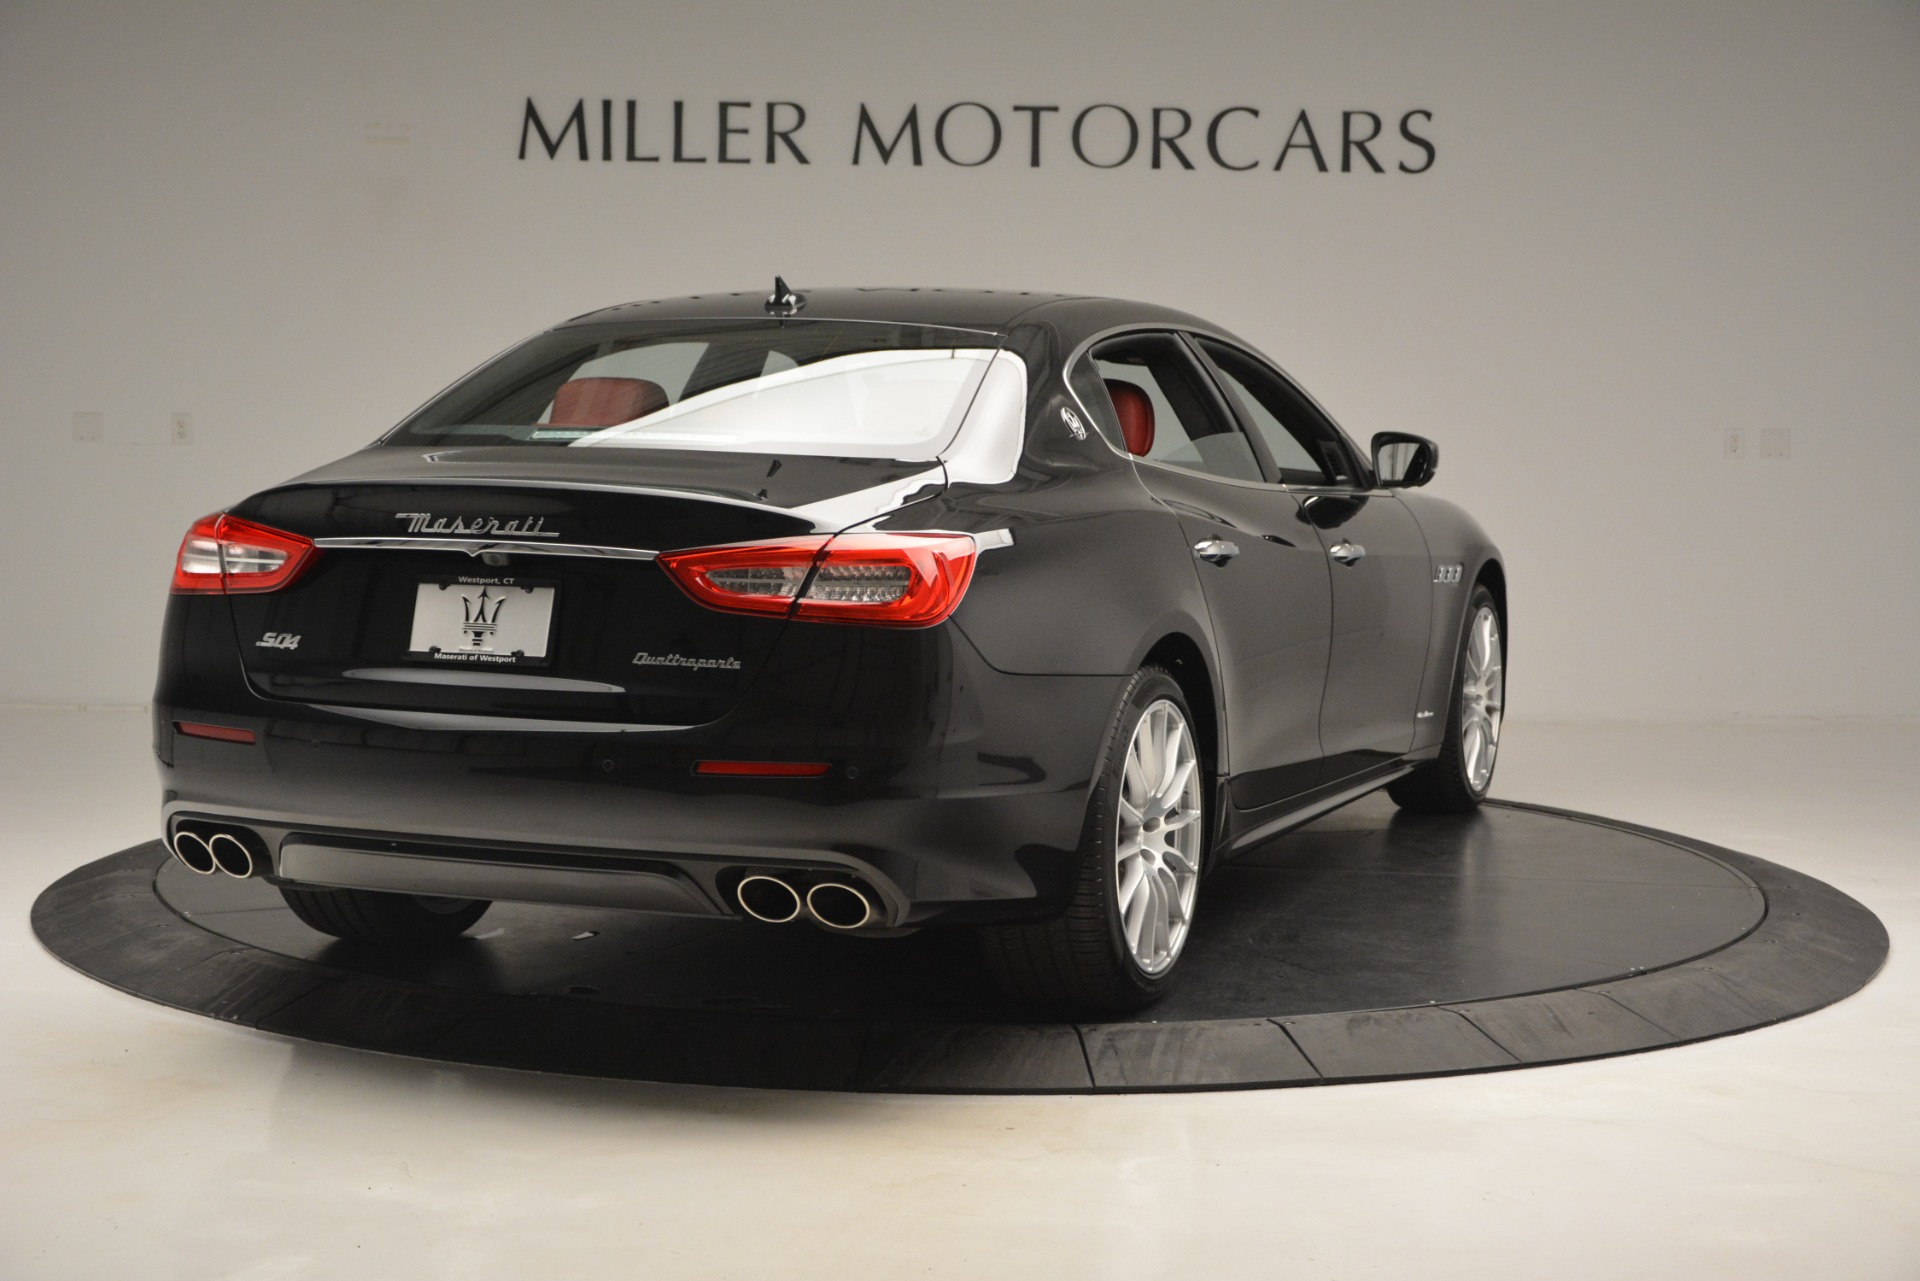 New 2019 Maserati Quattroporte S Q4 GranLusso For Sale In Greenwich, CT. Alfa Romeo of Greenwich, W629 2718_p7